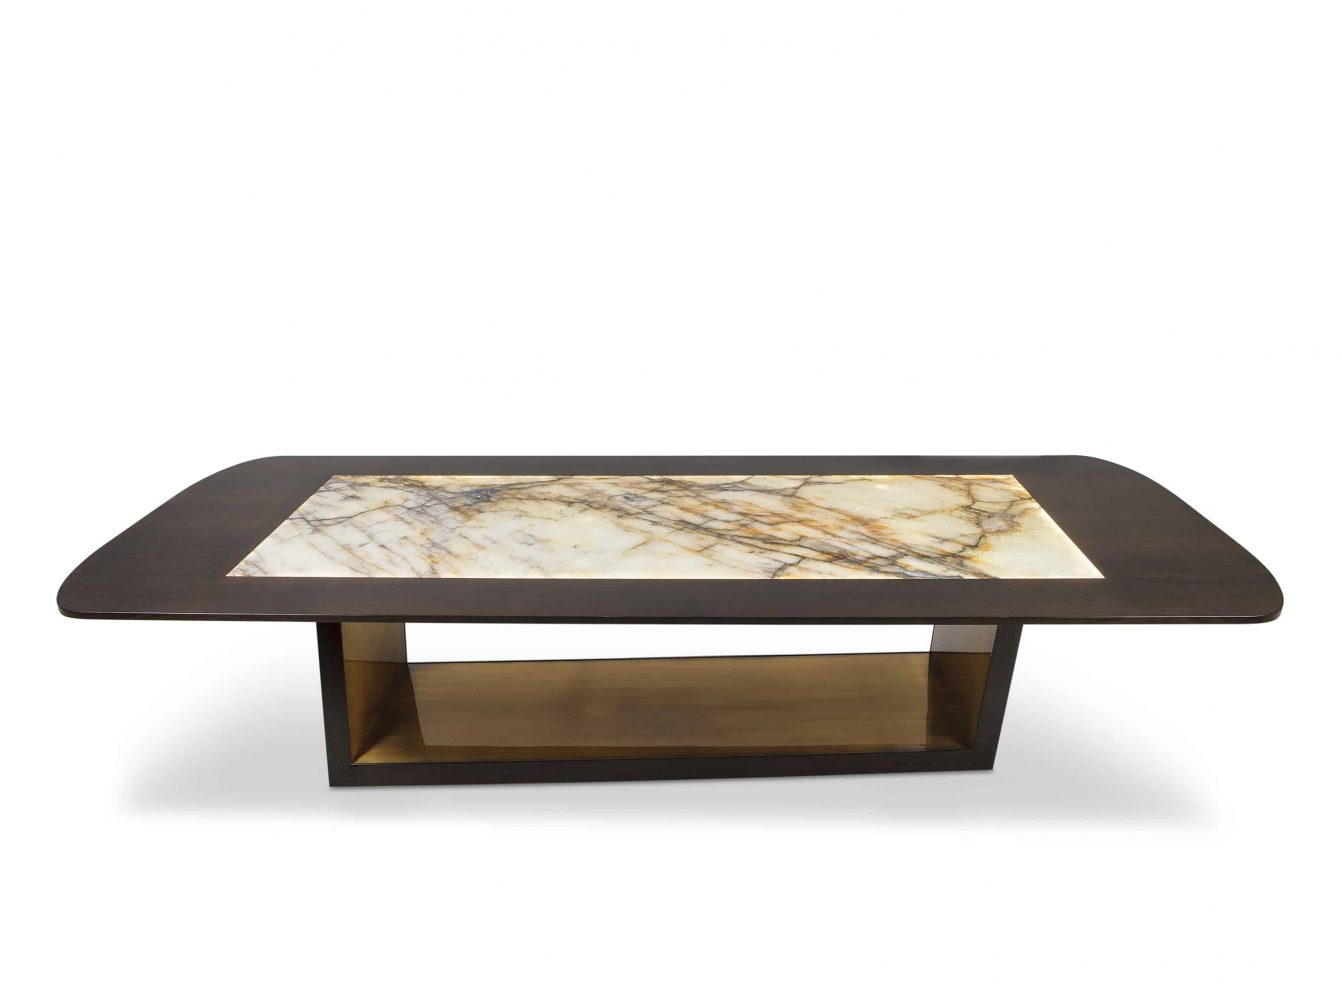 Olisippo-G702615-Table-S-01